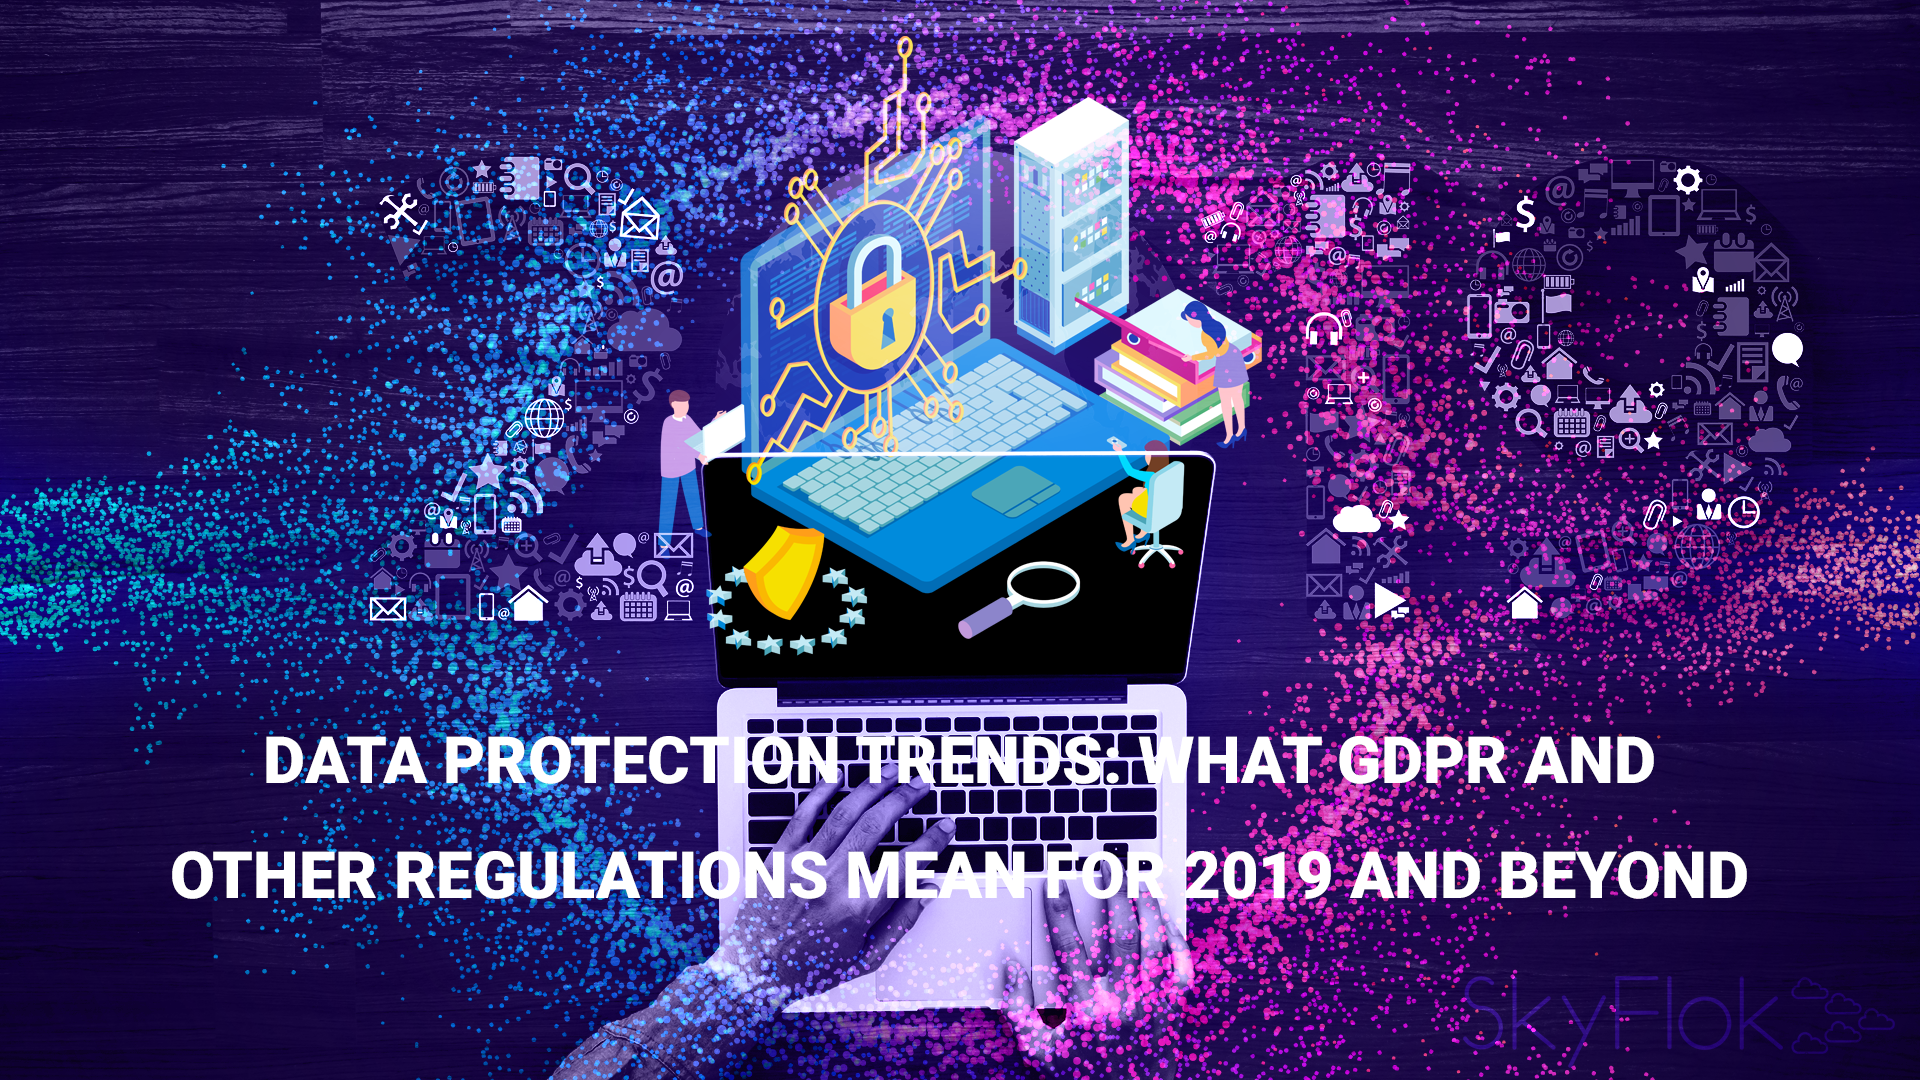 Data Protection Trends: What GDPR And Other Regulations Mean For 2019 And Beyond